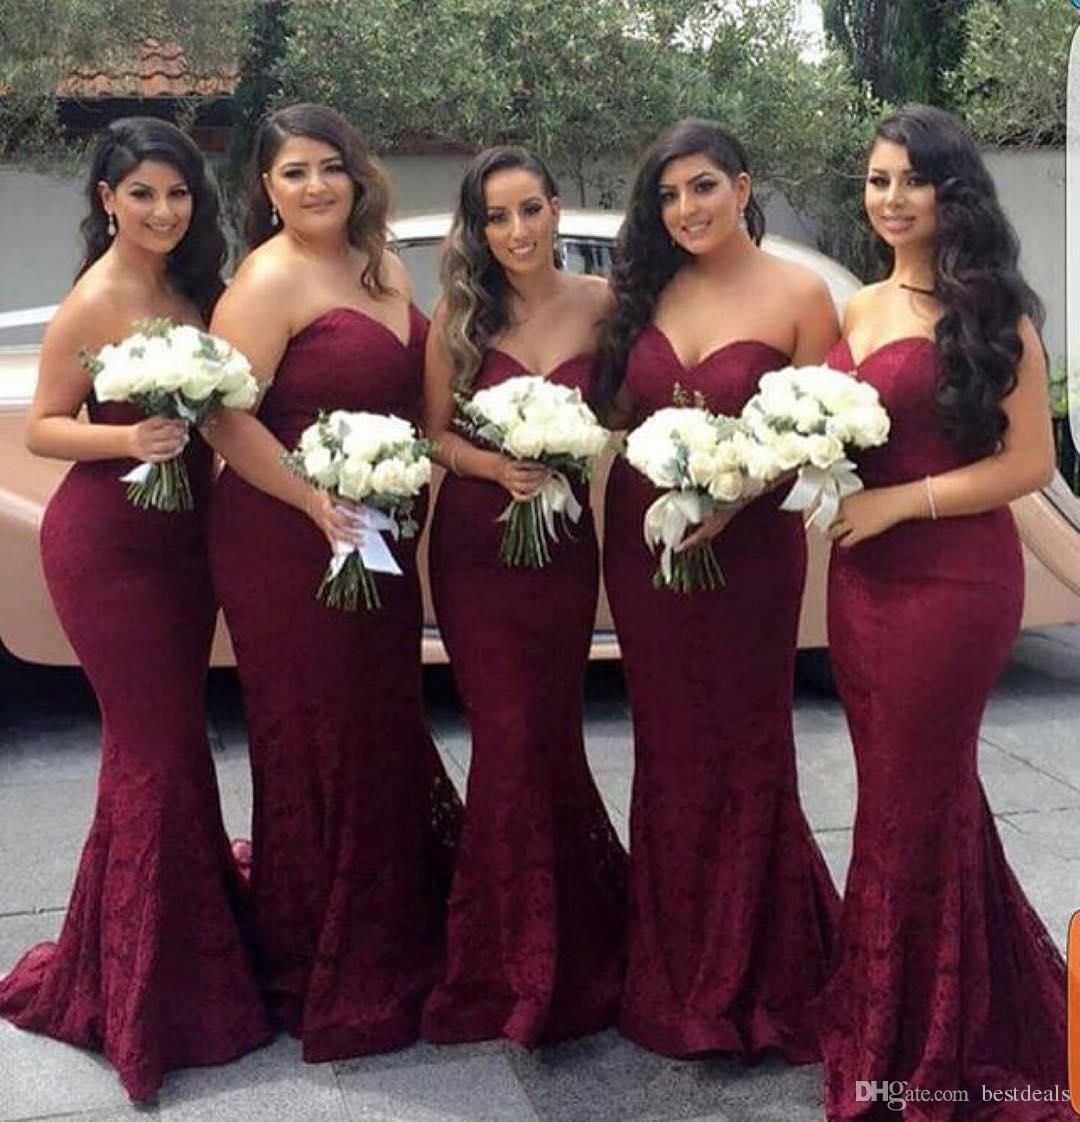 Elegant burgundy sweetheart lace mermaid cheap long bridesmaid elegant burgundy sweetheart lace mermaid cheap long bridesmaid dresses 2017 wine maid of honor wedding guest dress prom party gowns cheap bridesmaid dresses ombrellifo Image collections